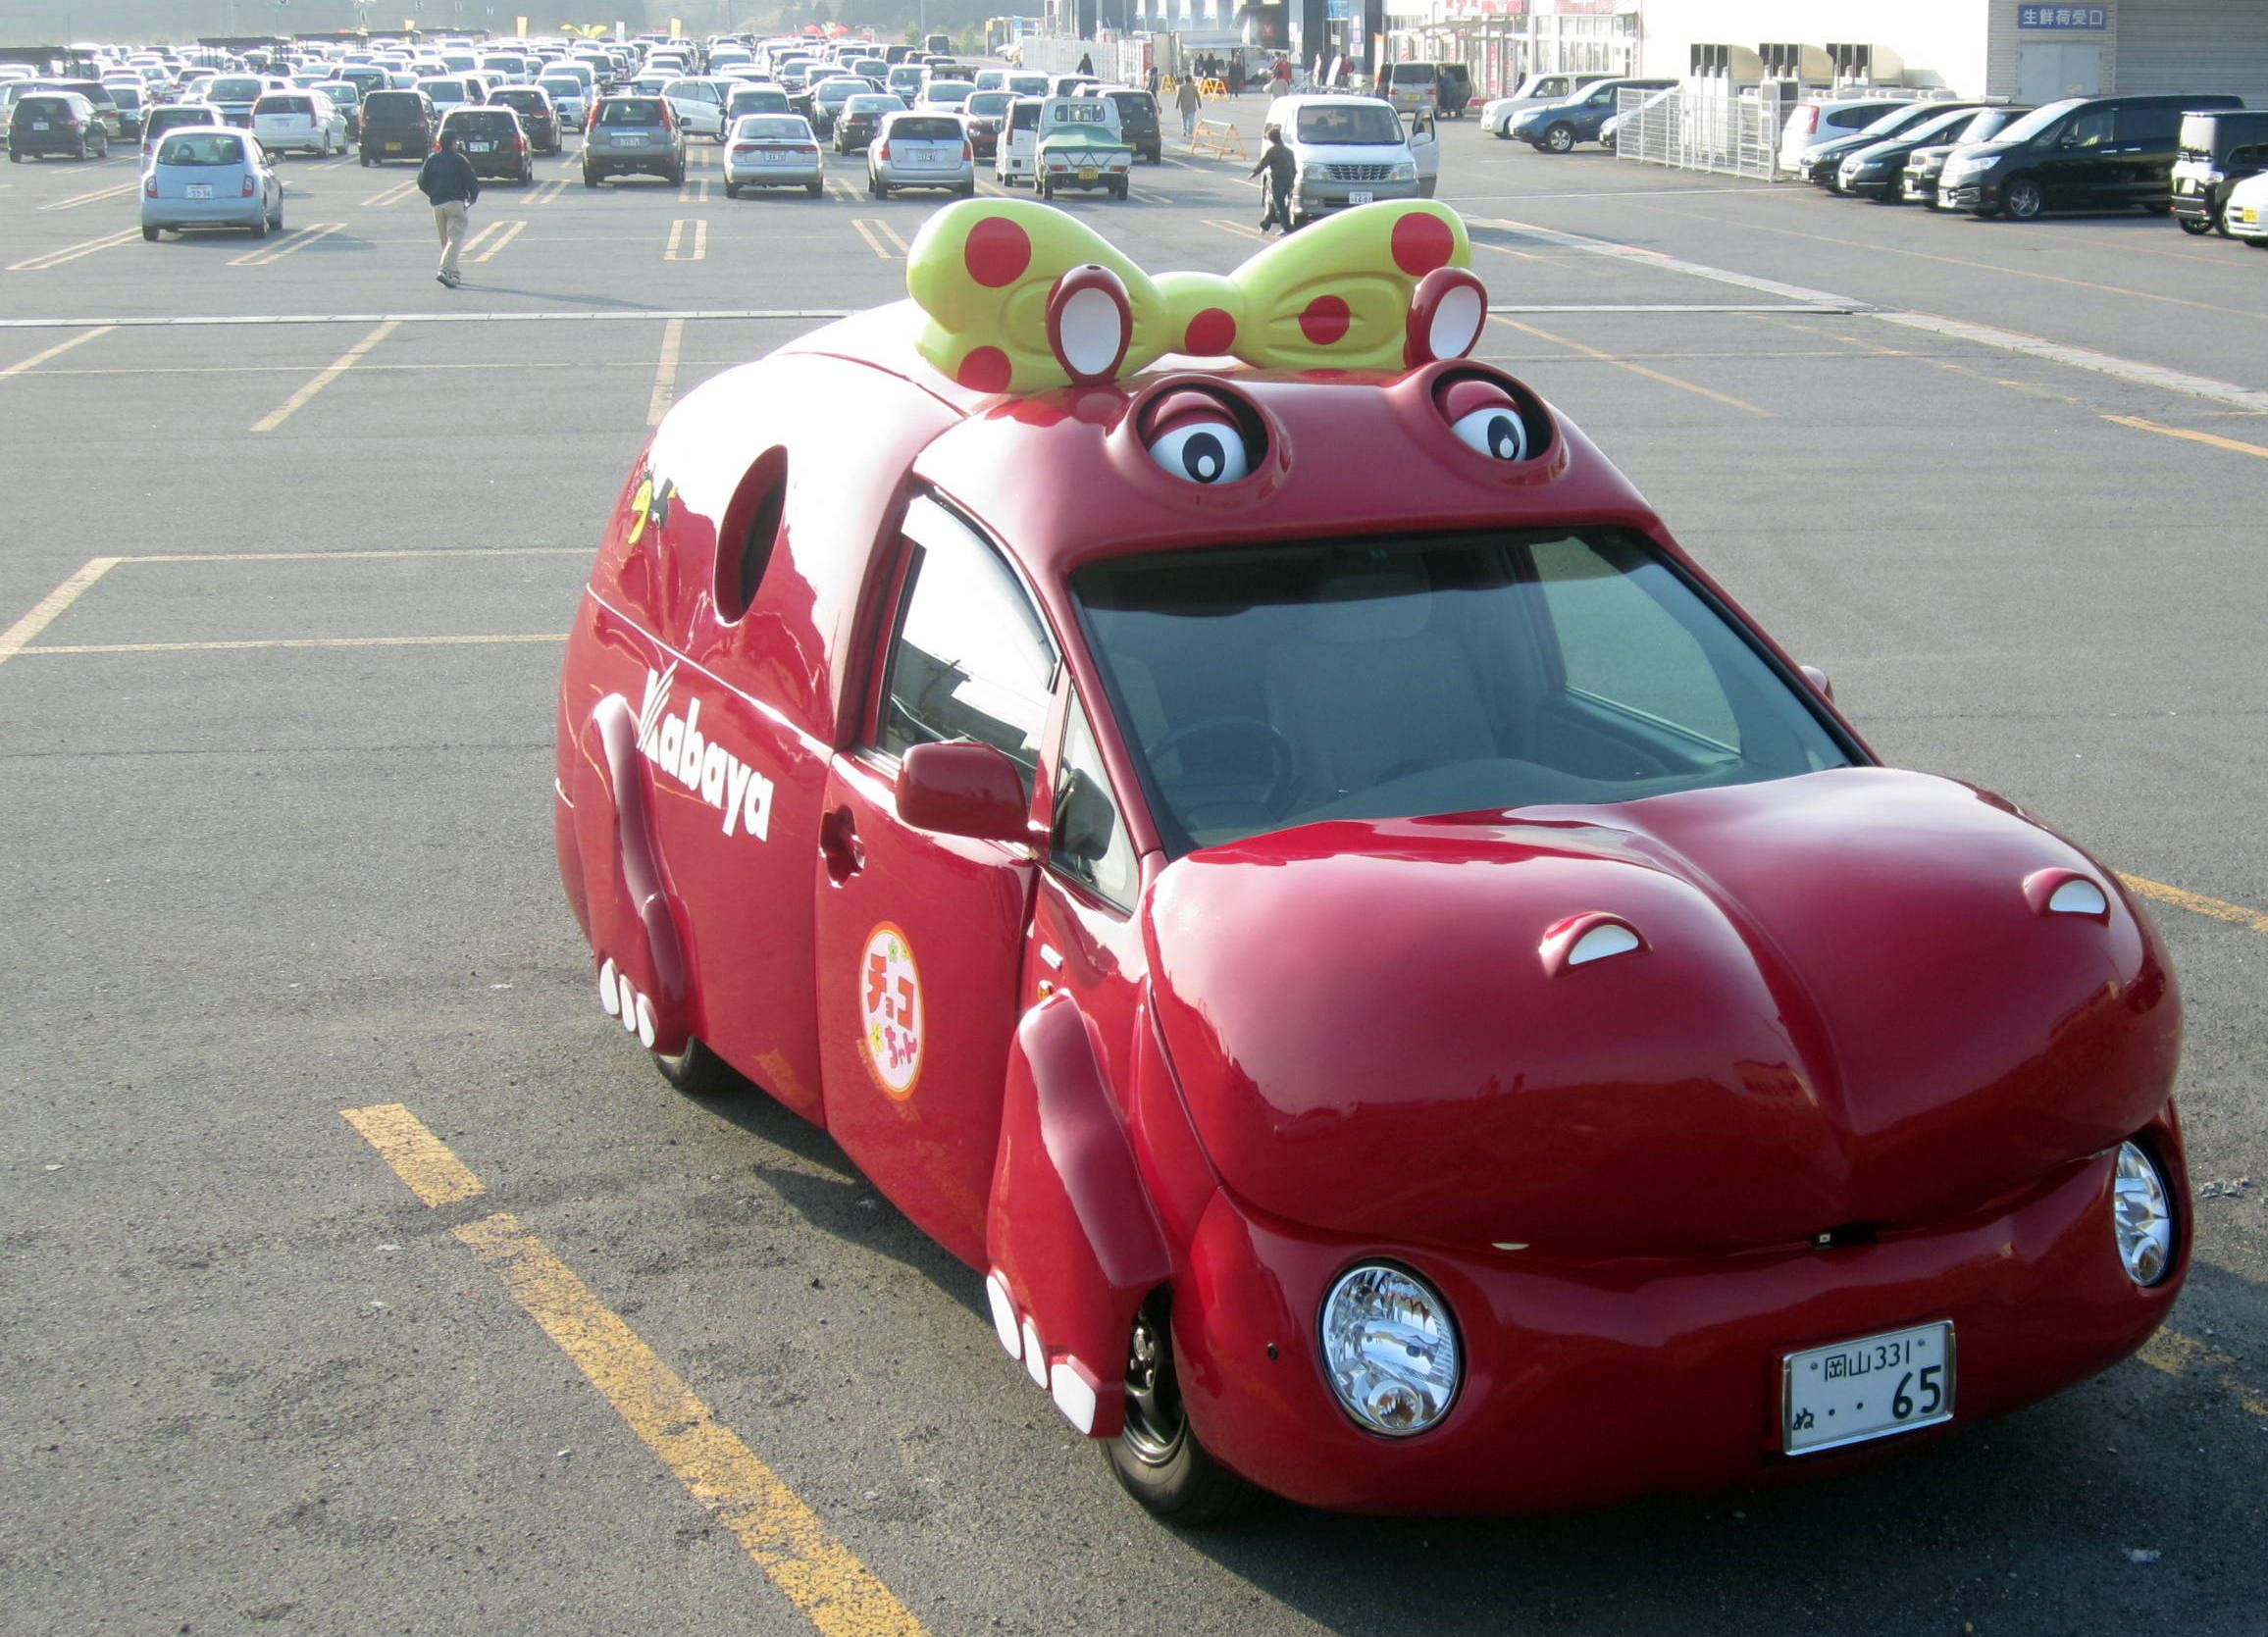 Silly Cars Google Search Toy Car Silly Cars